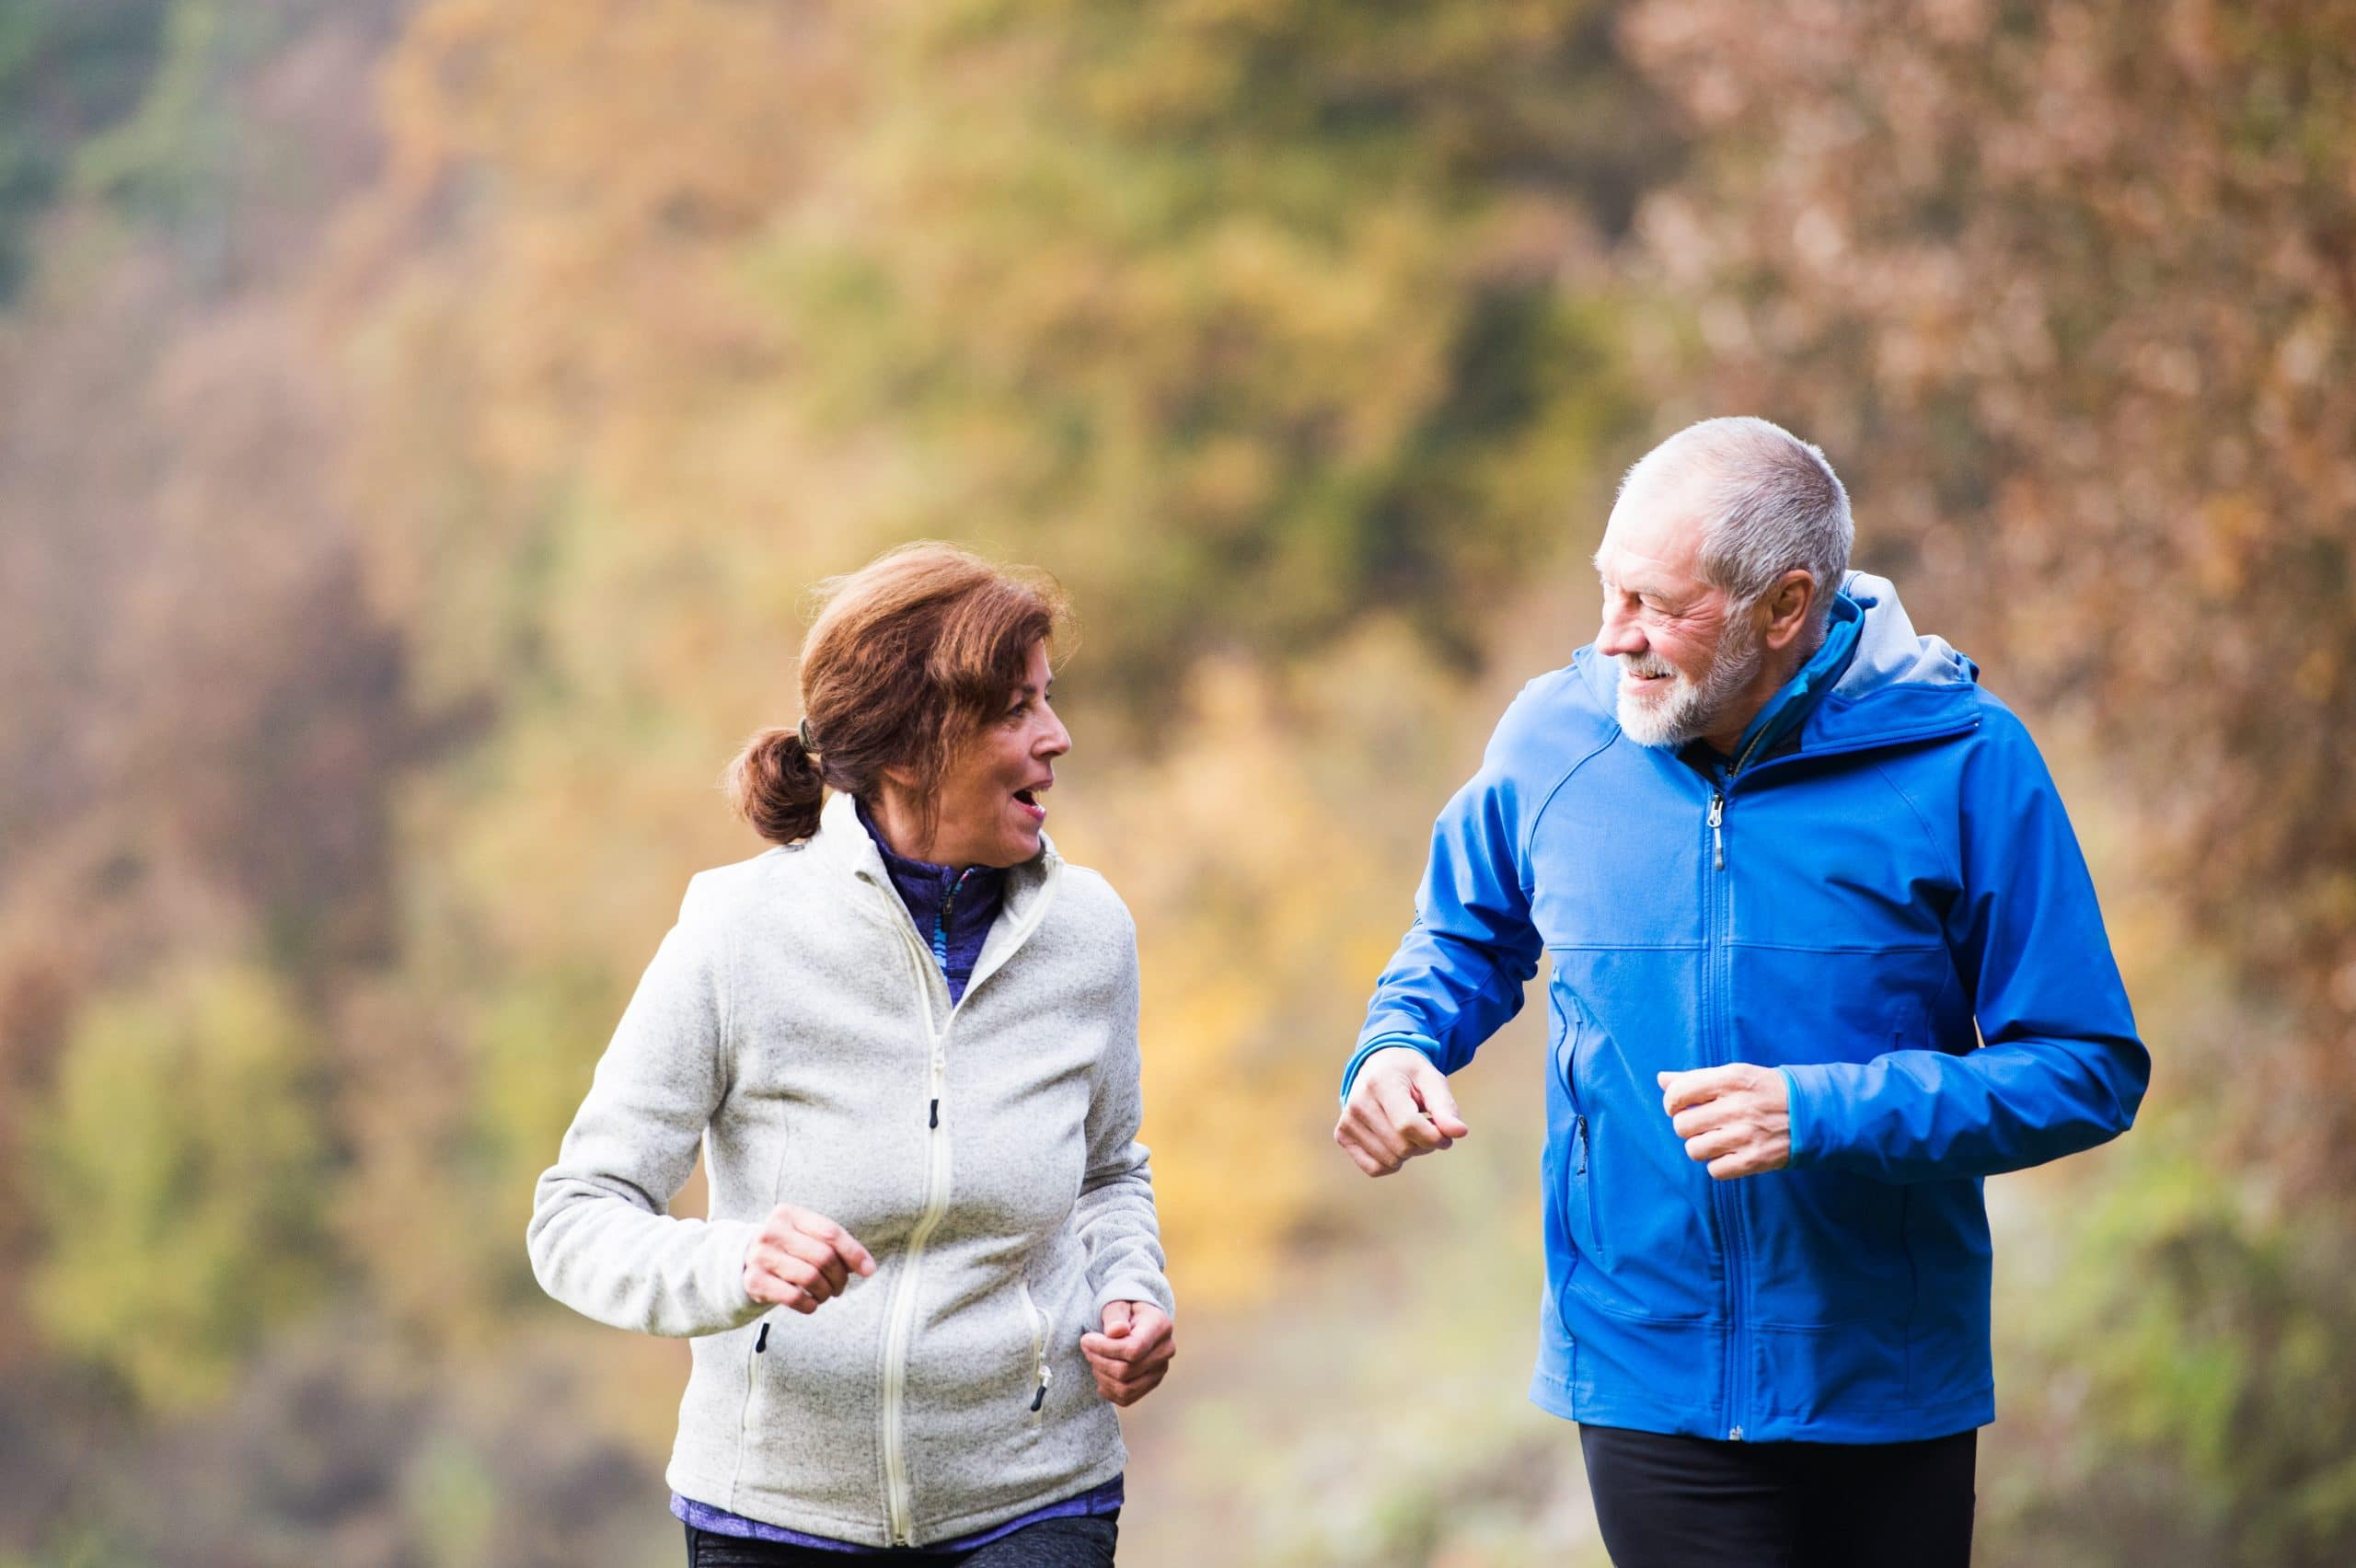 Diaphragmatic Breathing, and other exercises for COPD